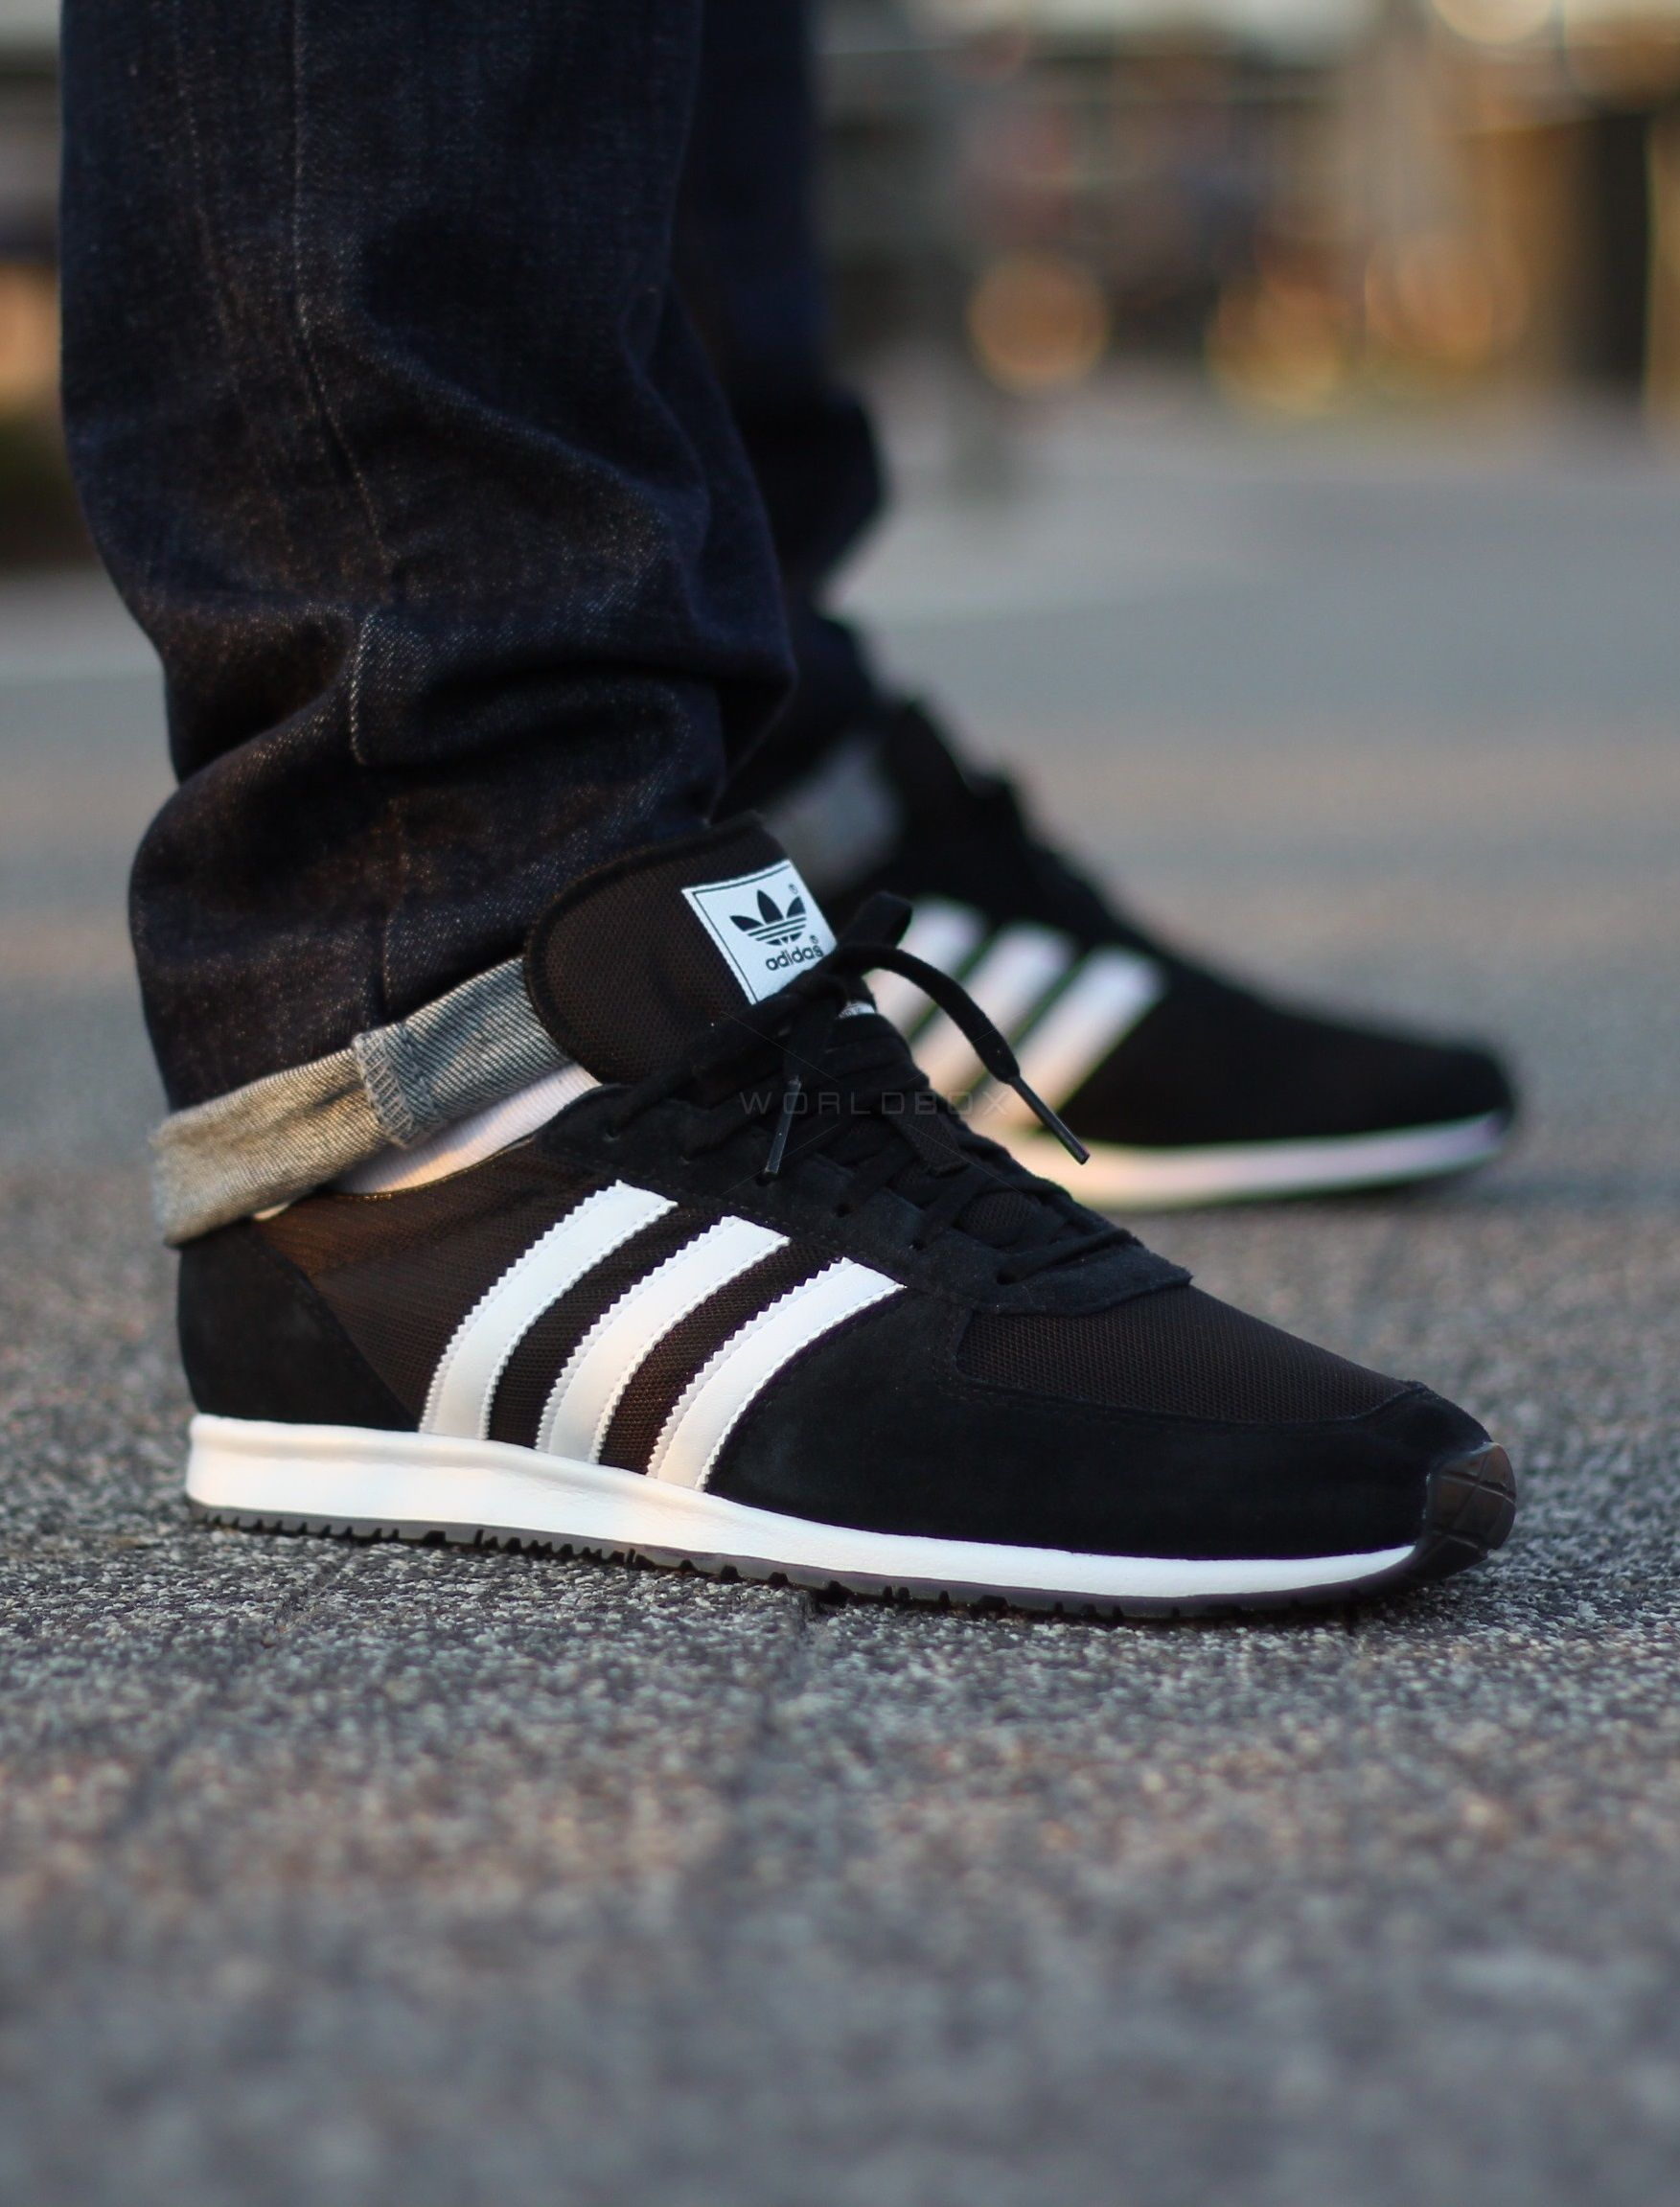 sneakers for cheap 0d6a1 13f06 adidas Originals Adi-Star Black